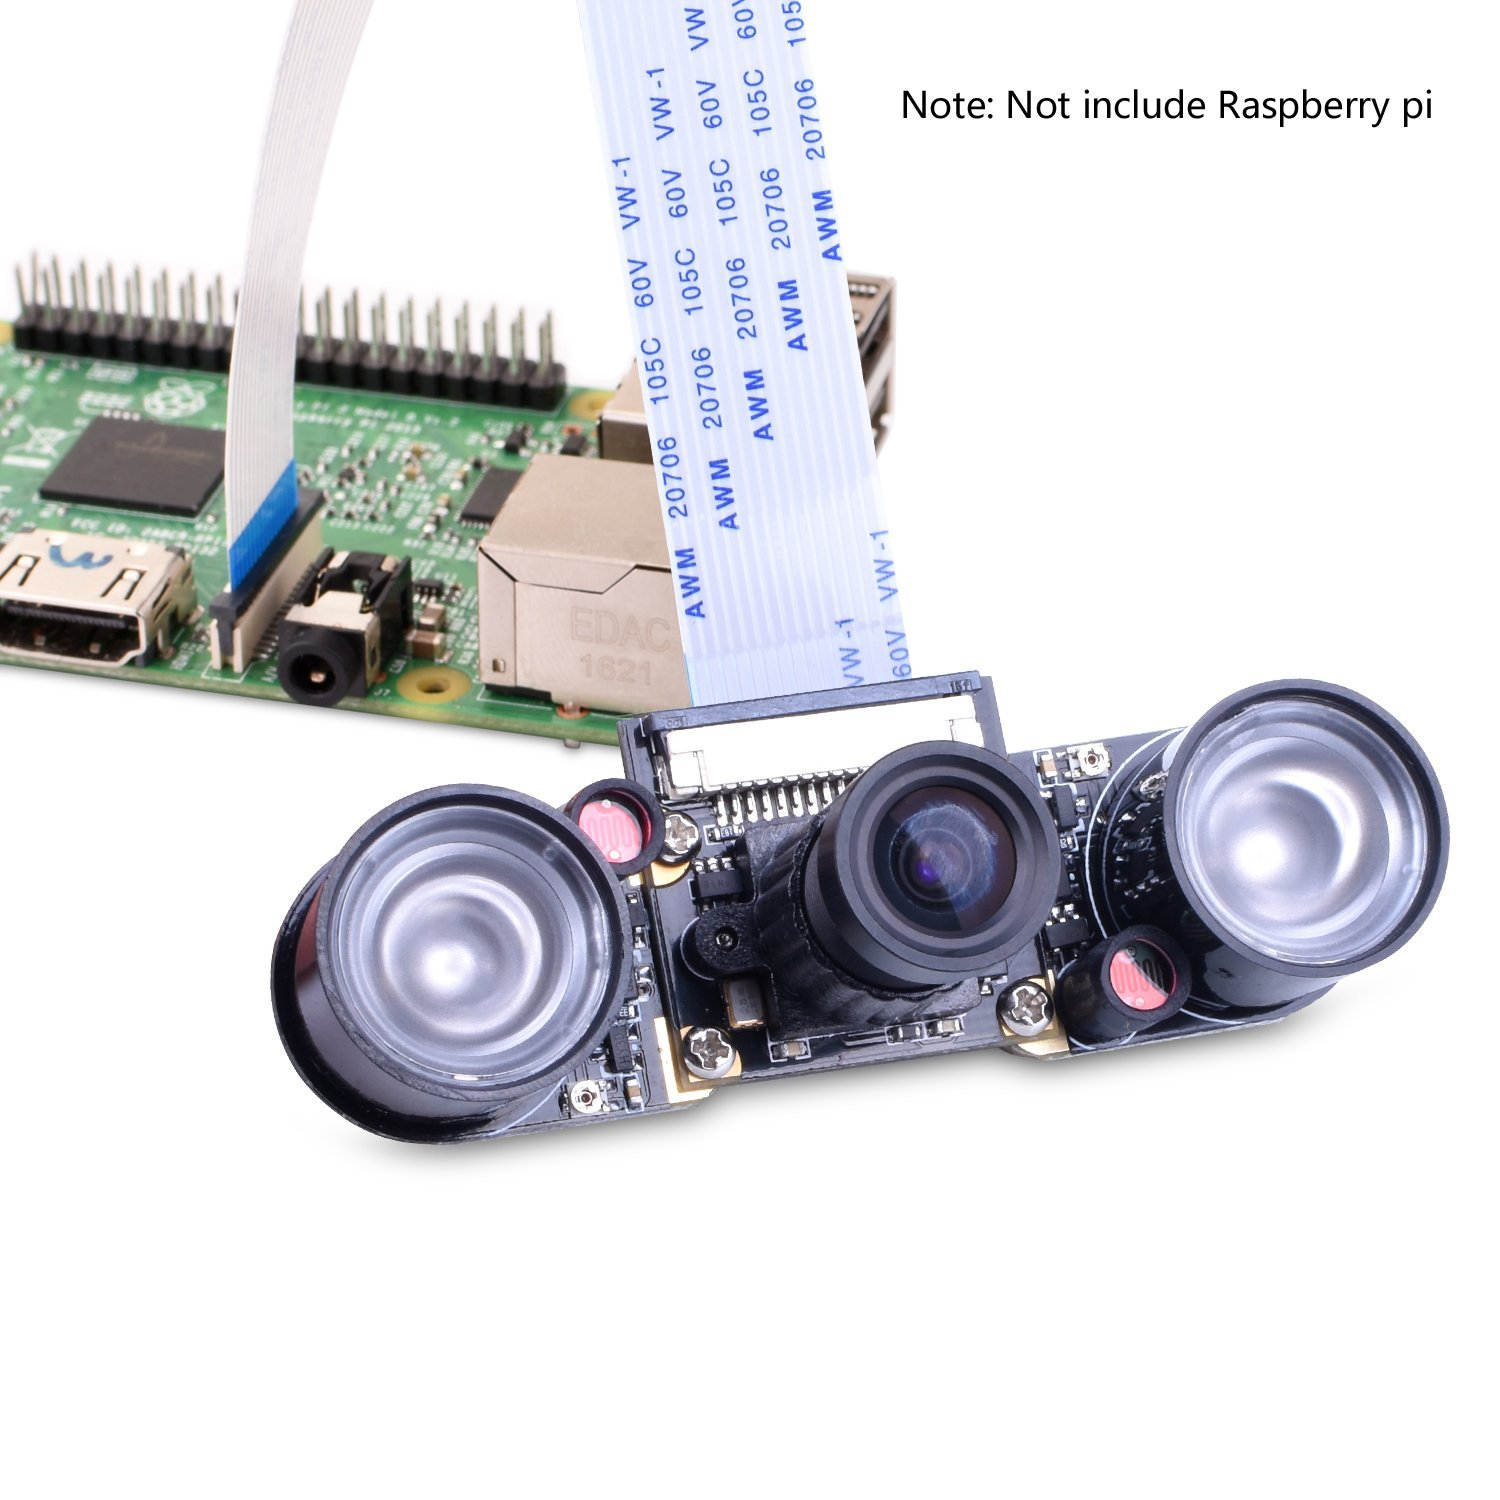 Miroad for Raspberry PI Camera Module 5MP 1080p OV5647 Sensor HD Video Webcam Supports Night Vision for All Vision SC15-1